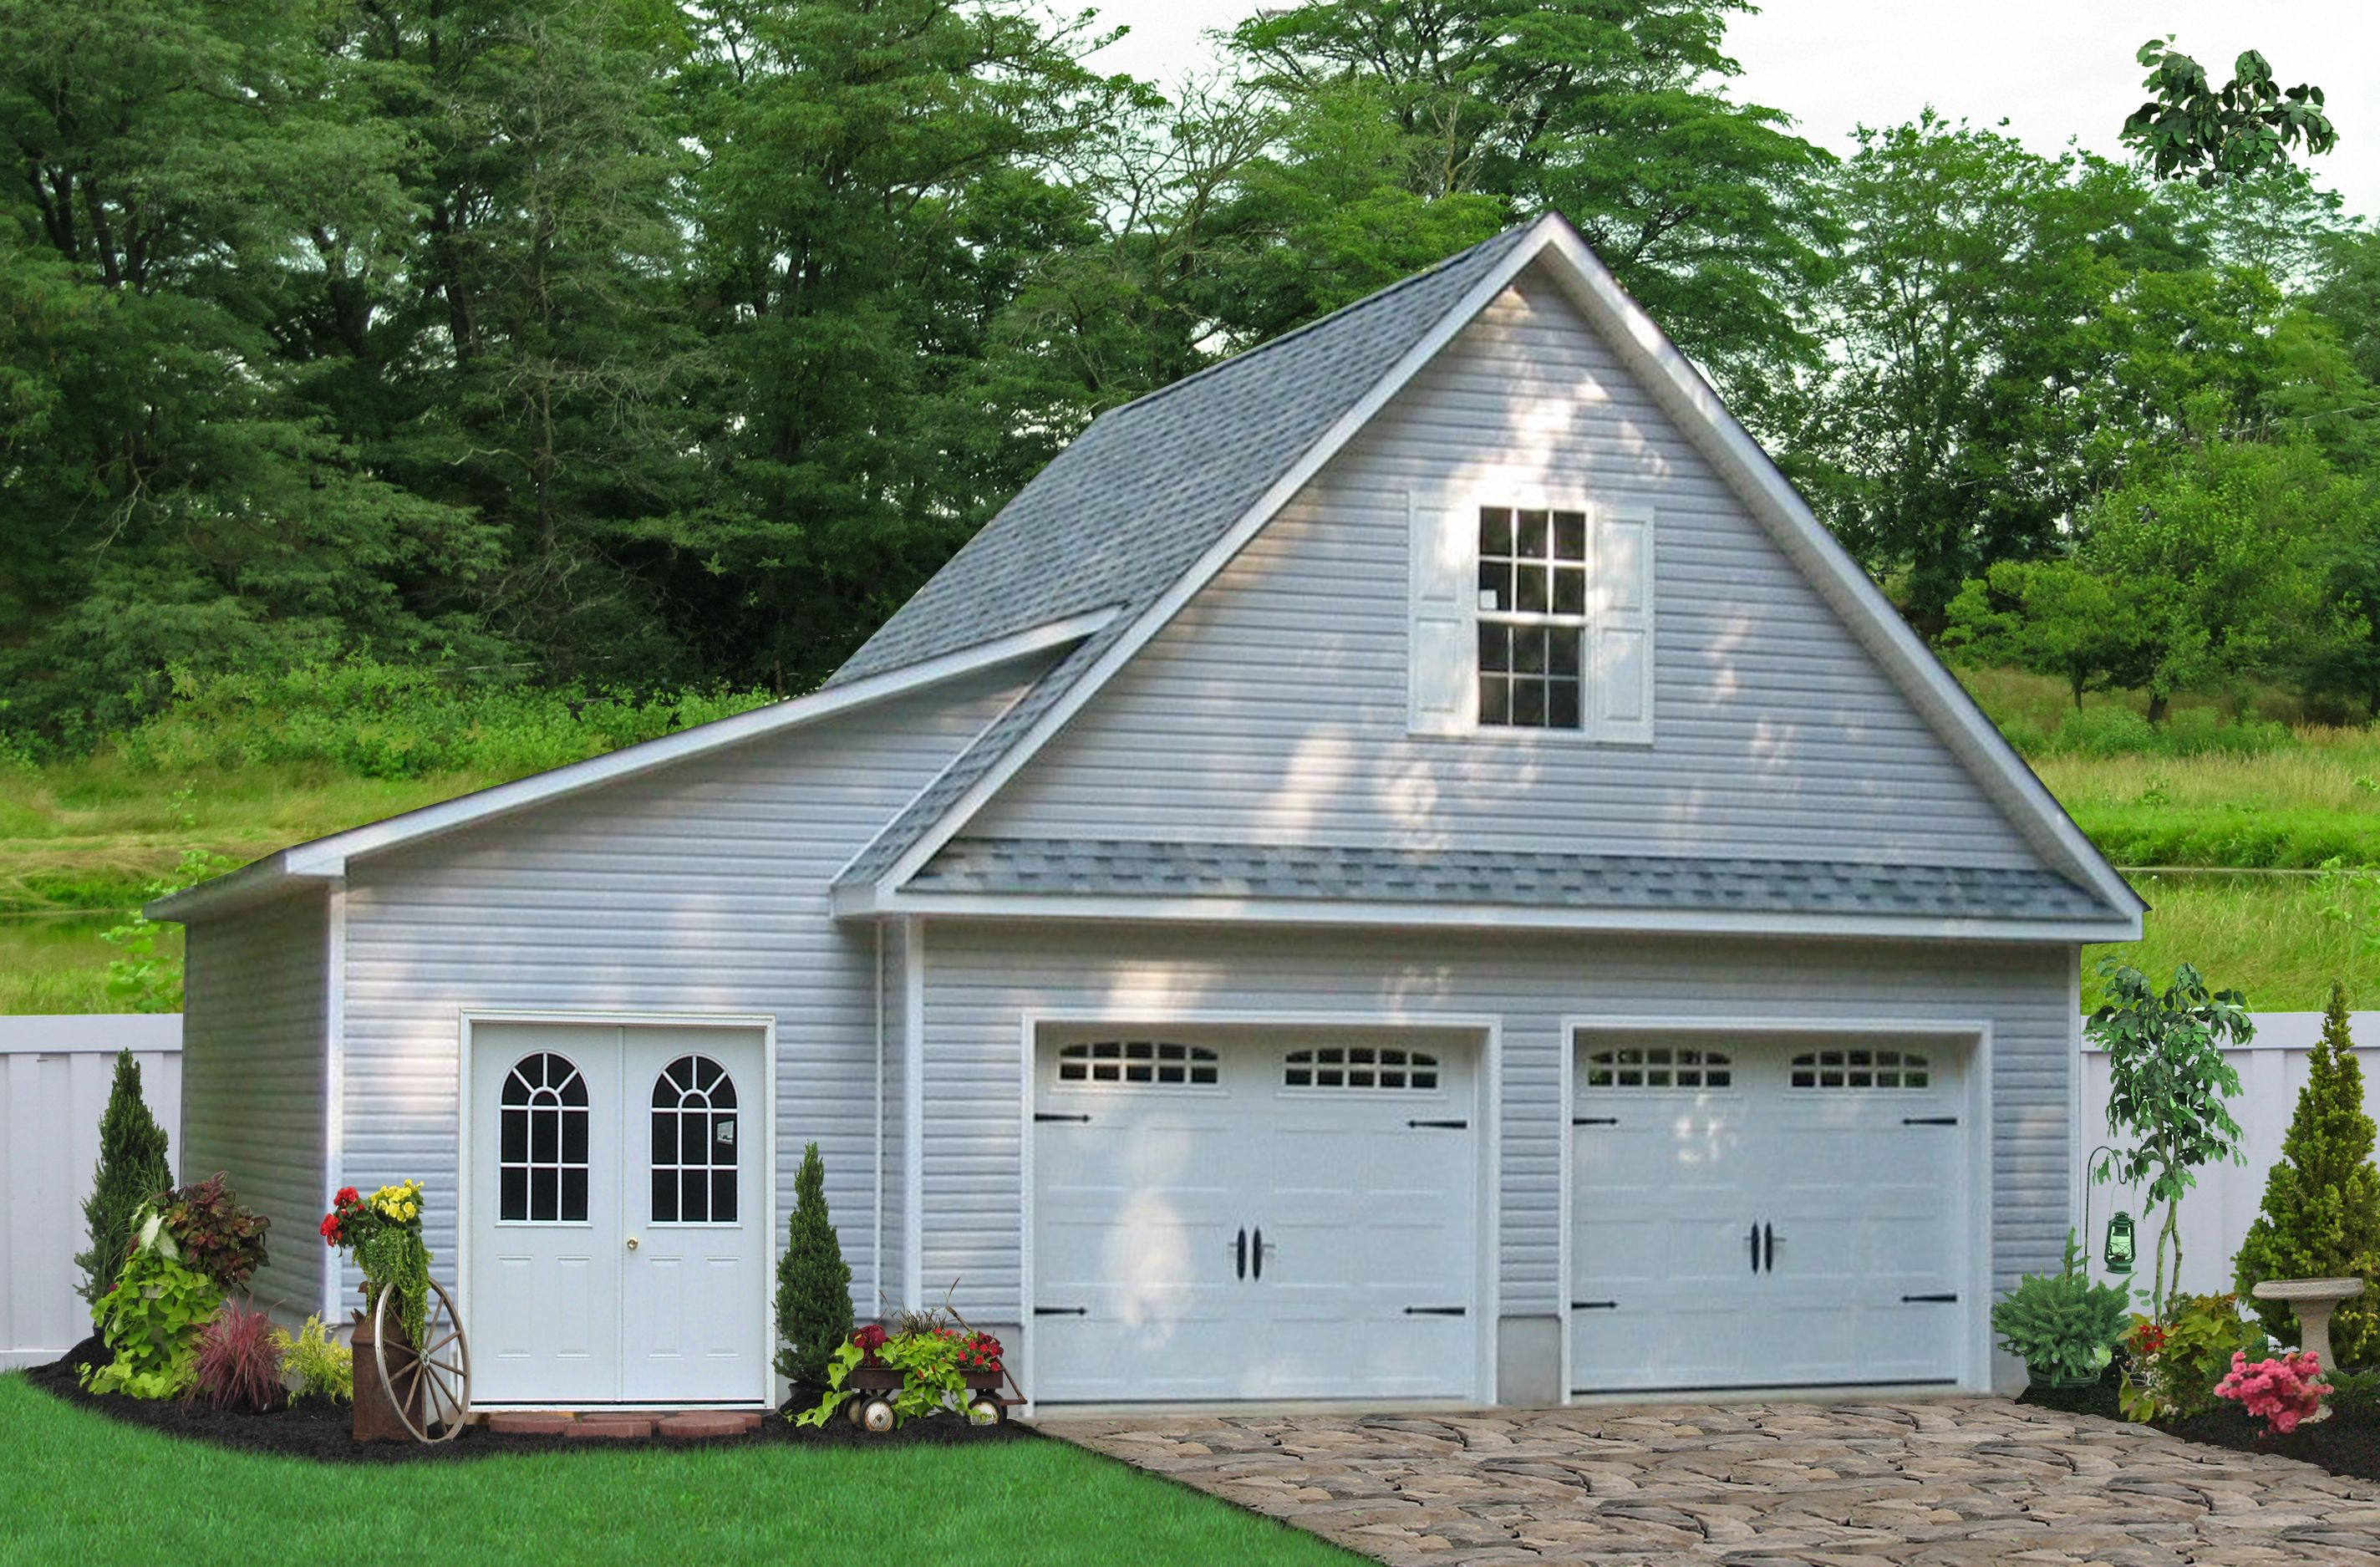 Two car garage with a lean to buy this garage with a lean to from the amish in lancaster county pa this detached two car garage is prefabricated and then